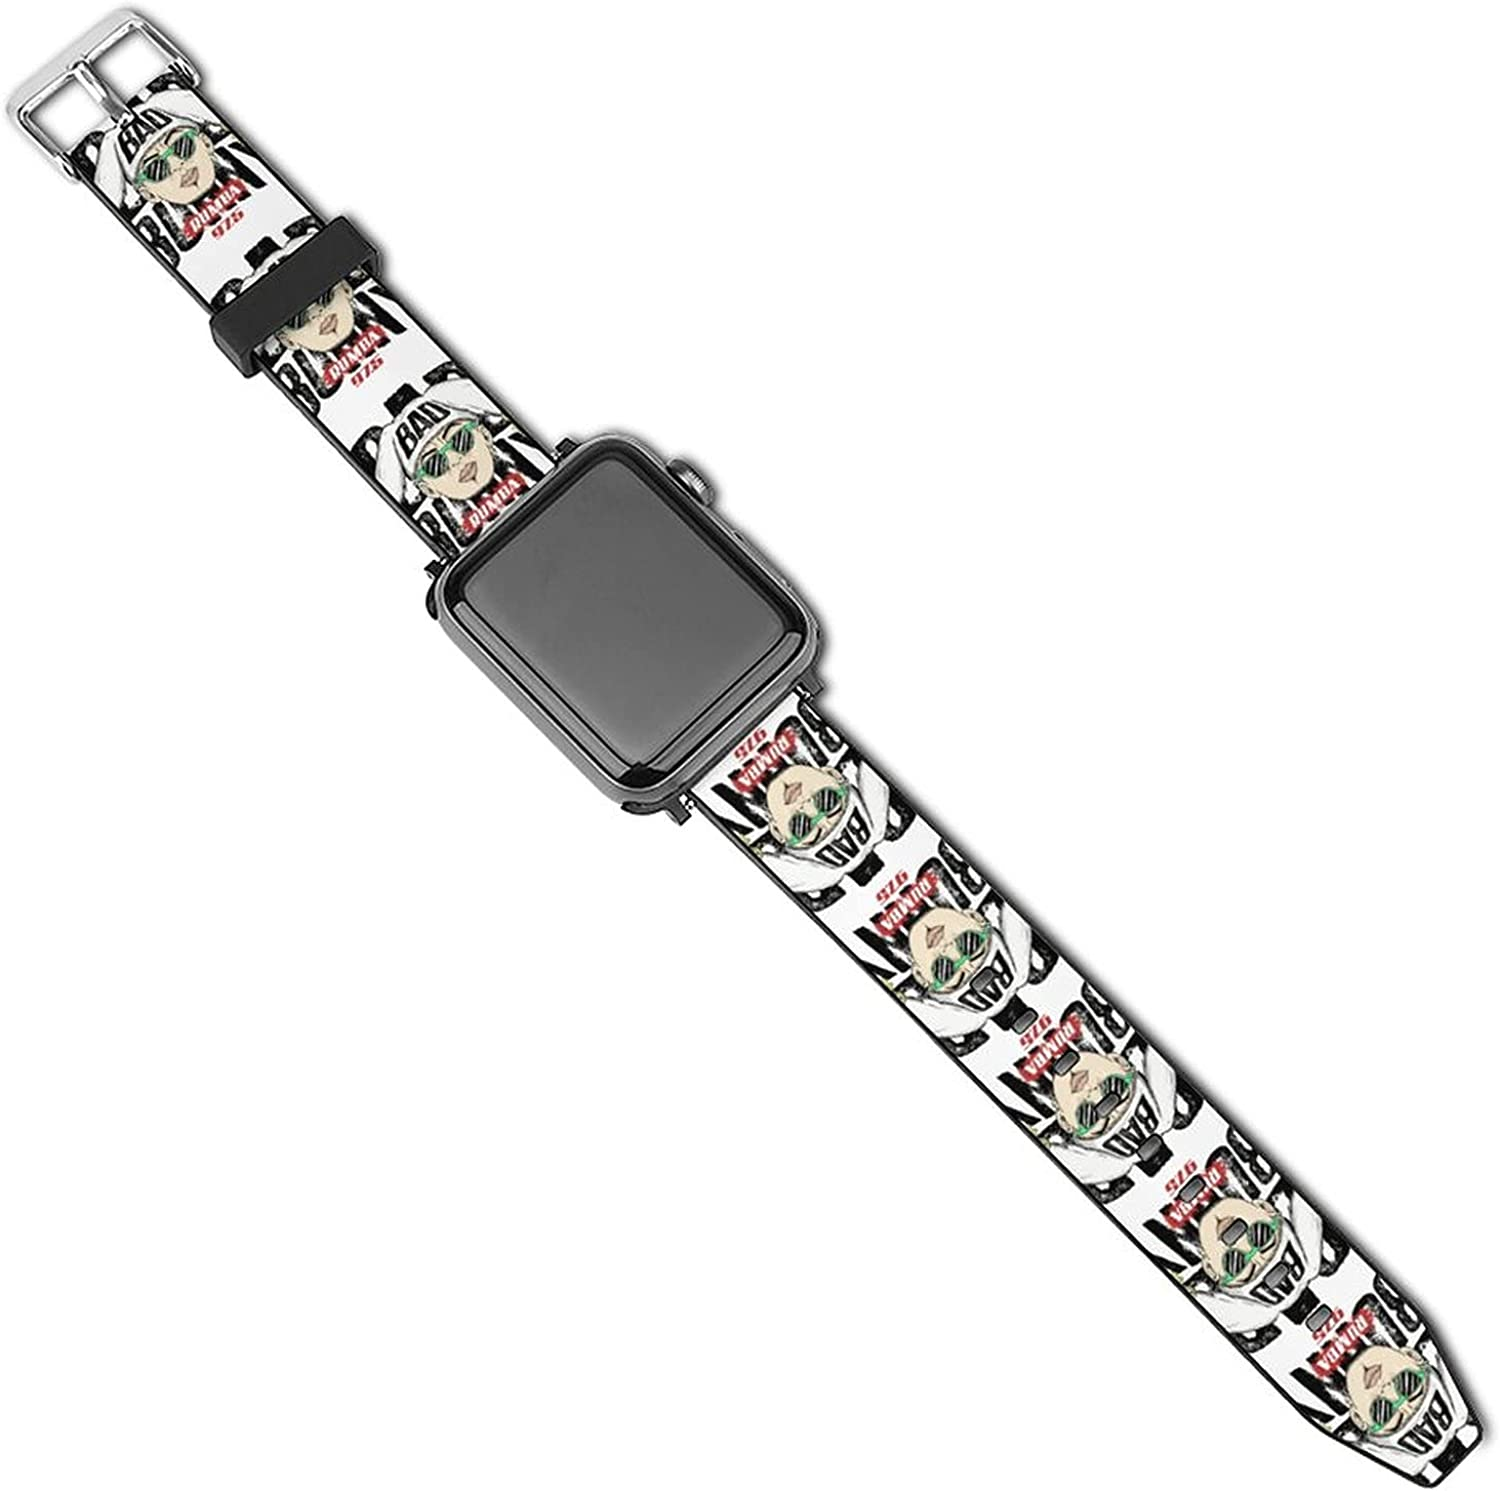 Ba-d Bu-nny Cool Patterned Leather Wristband Strap Compatible with Apple Watch Series 6/5/4/3/2/1